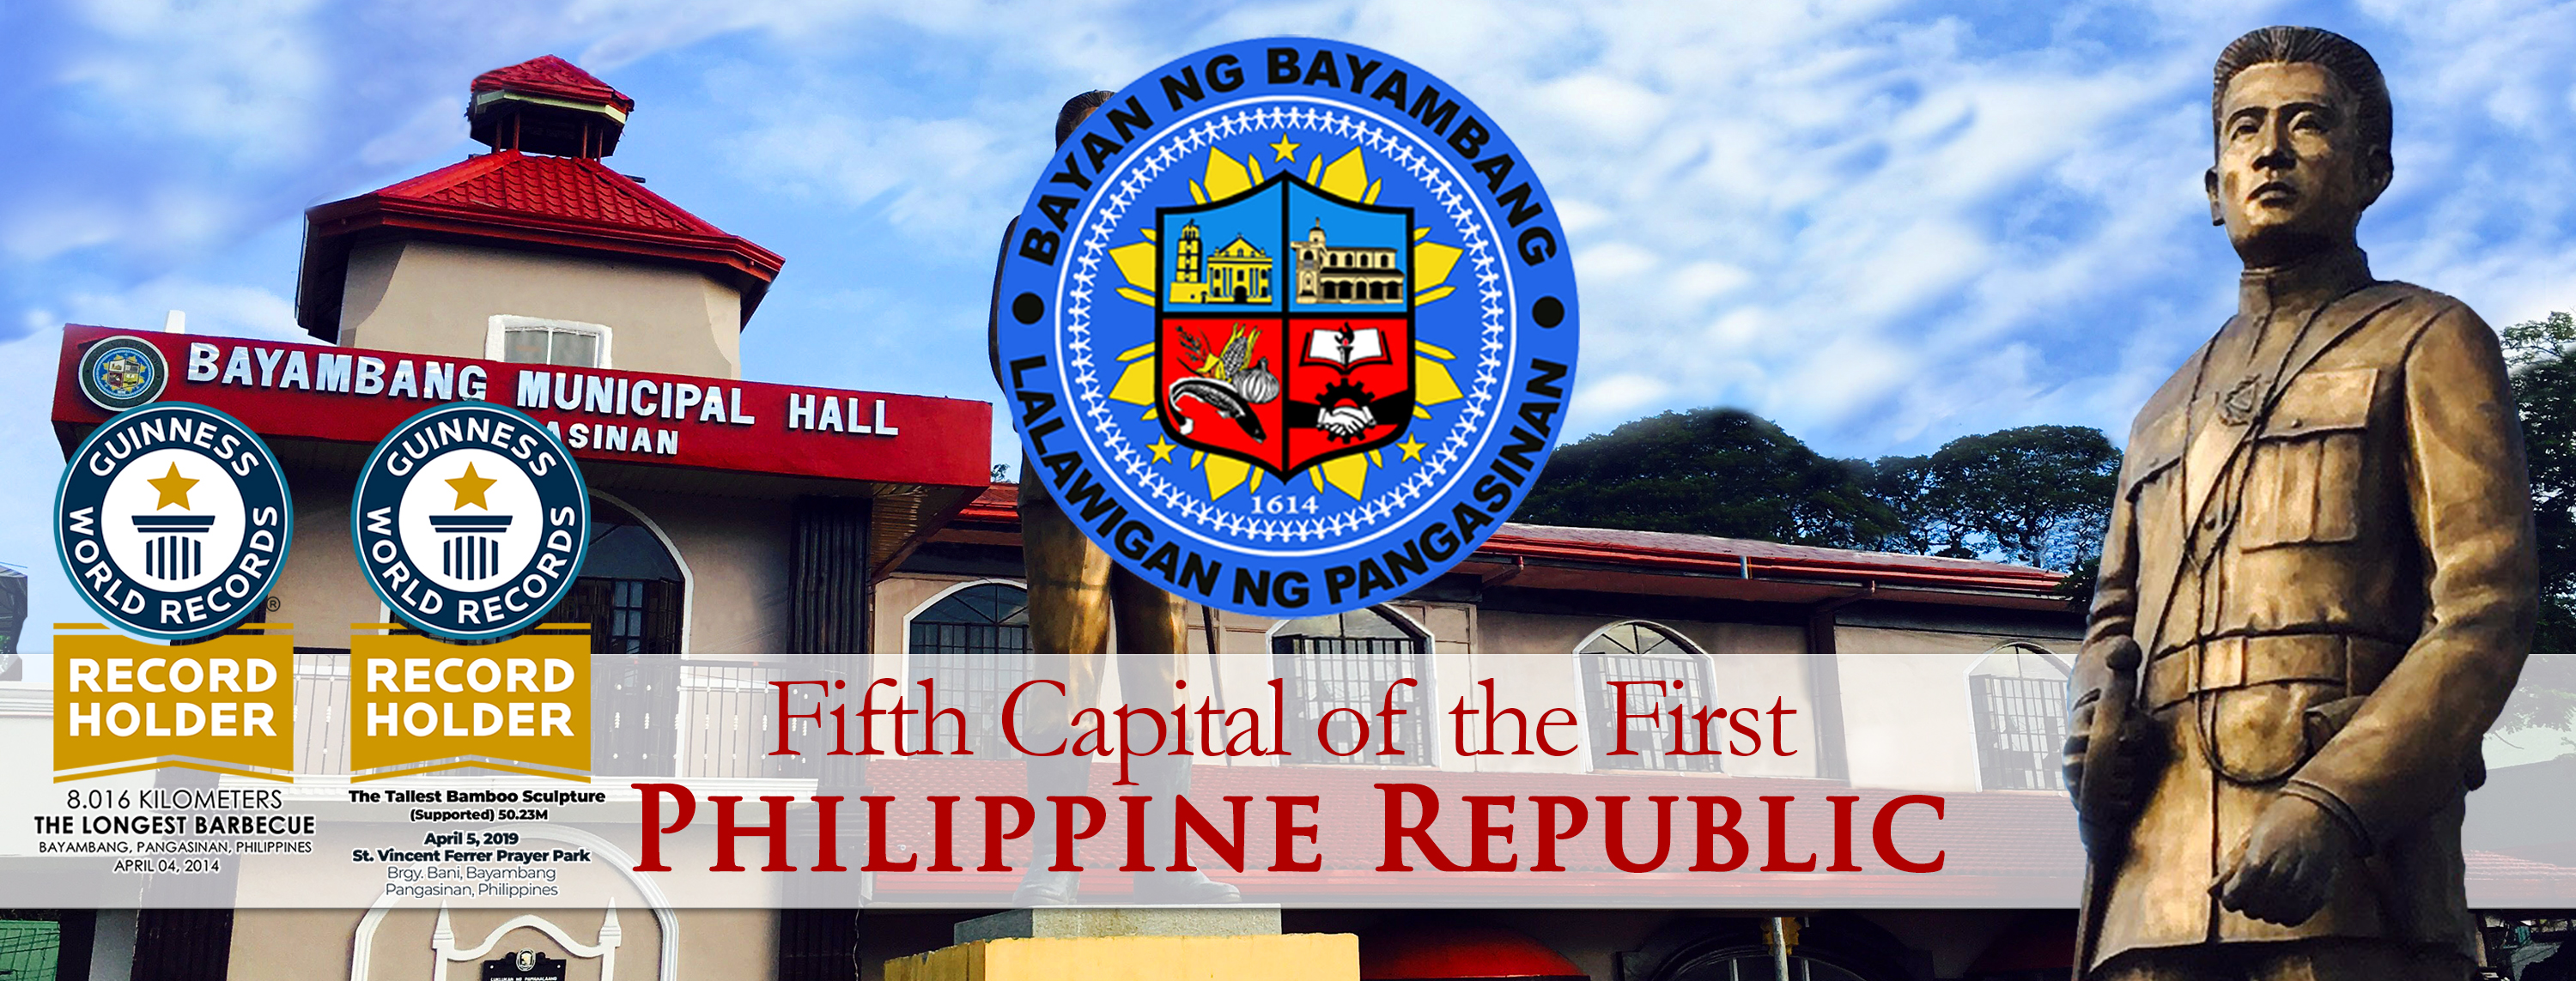 Home of Fifth Capital of Philippine Republic